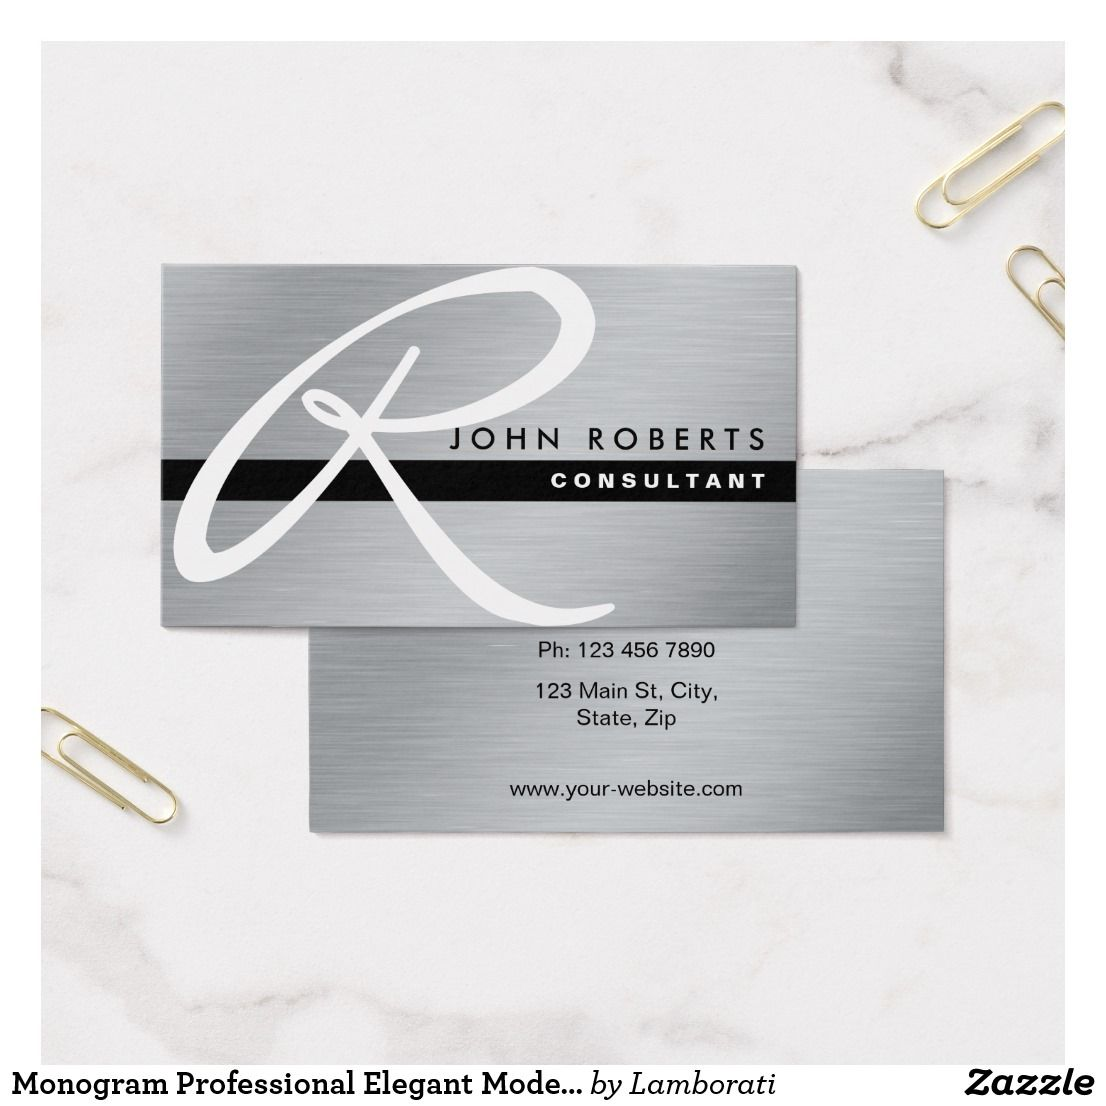 Monogram Professional Elegant Modern Silver Metal Business Card ...